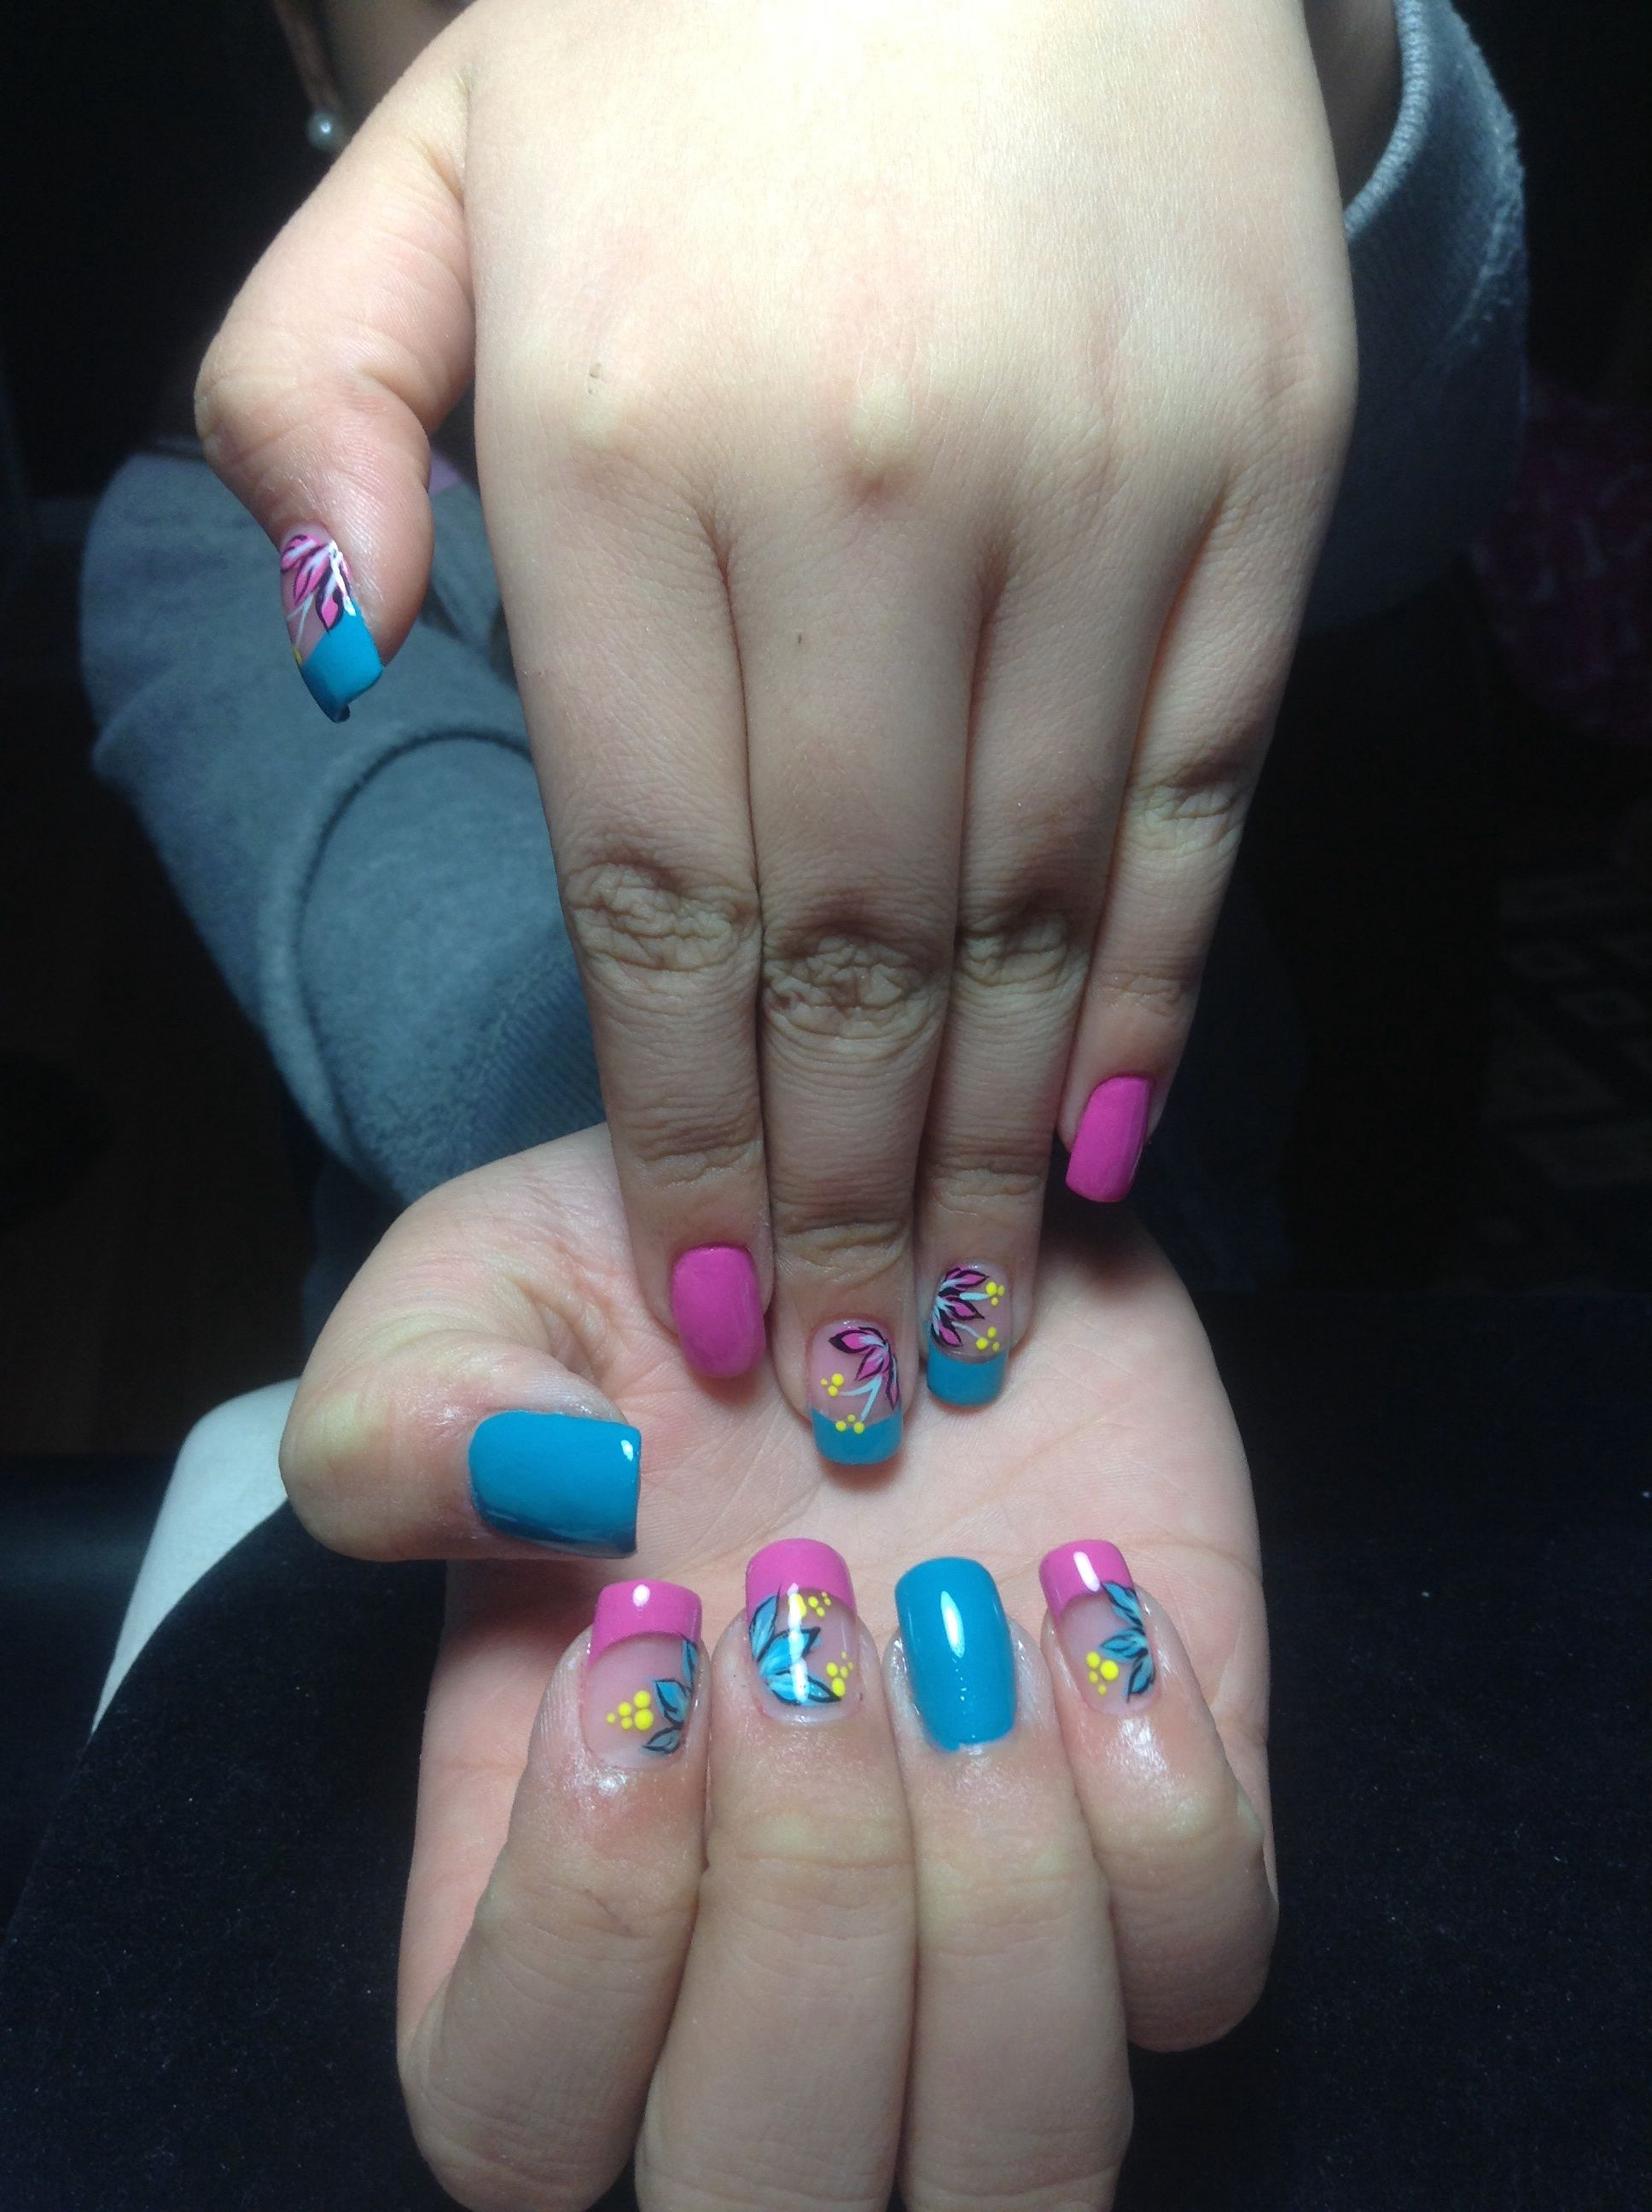 Nail Art For A 13 Year Old Nails Nail Art 13 Year Olds